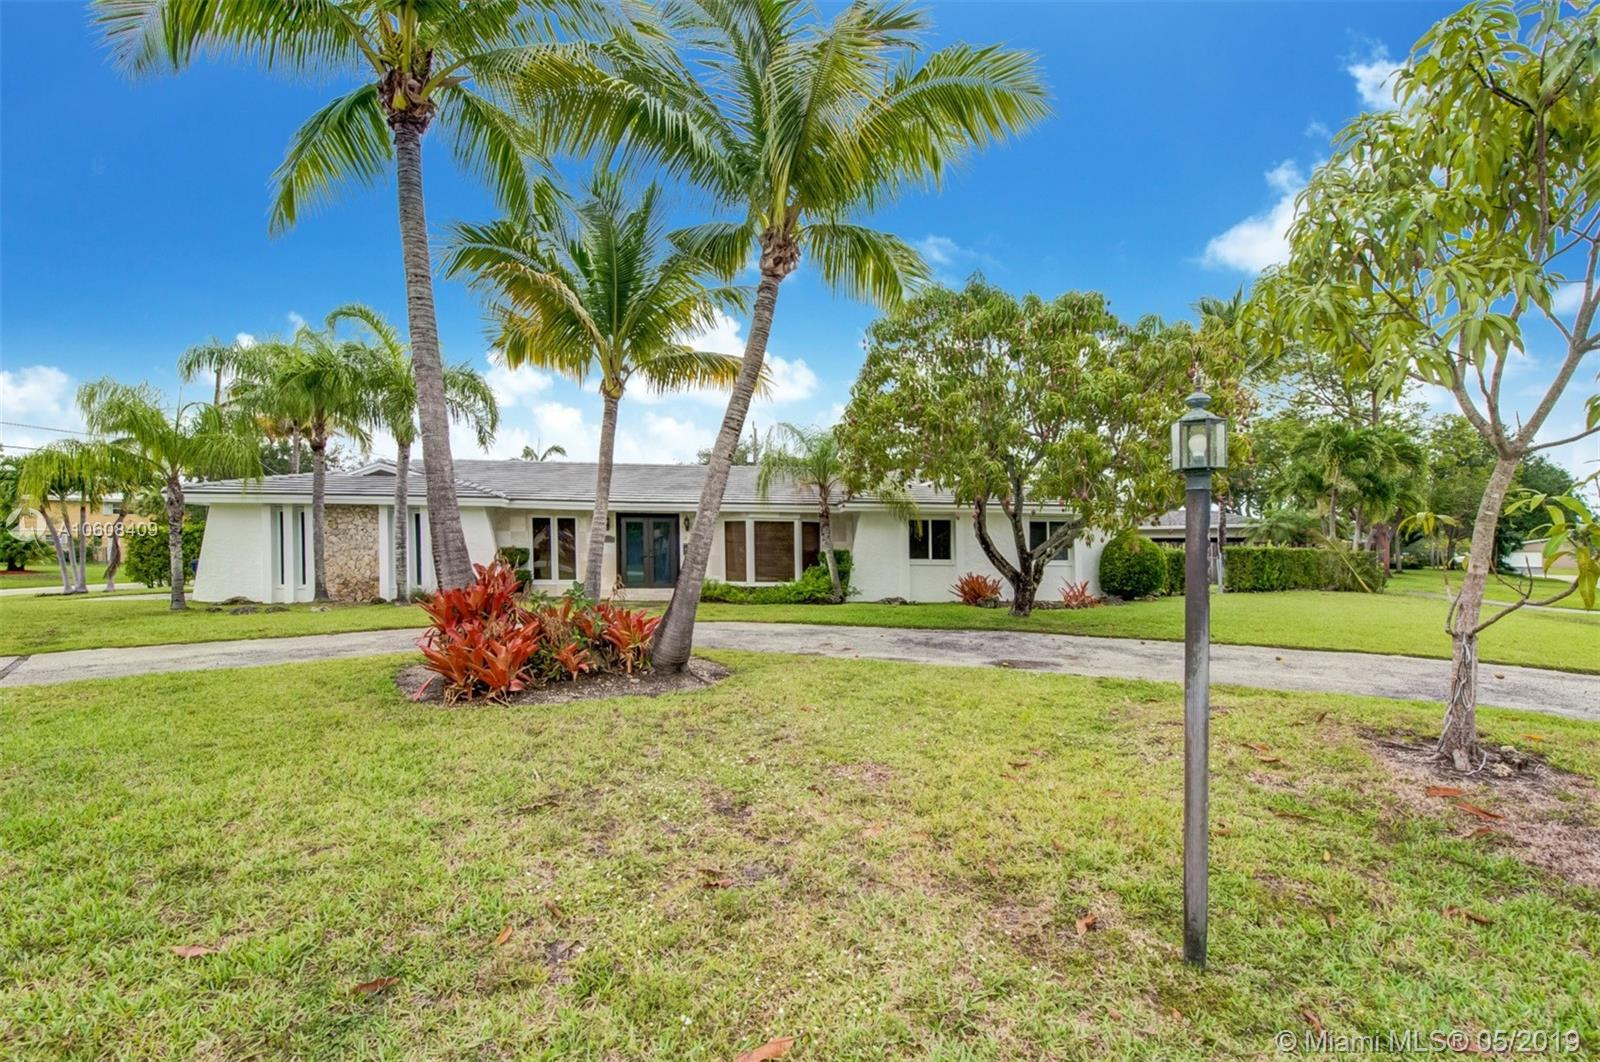 8055 SW 142nd Ter, Kendall, Florida